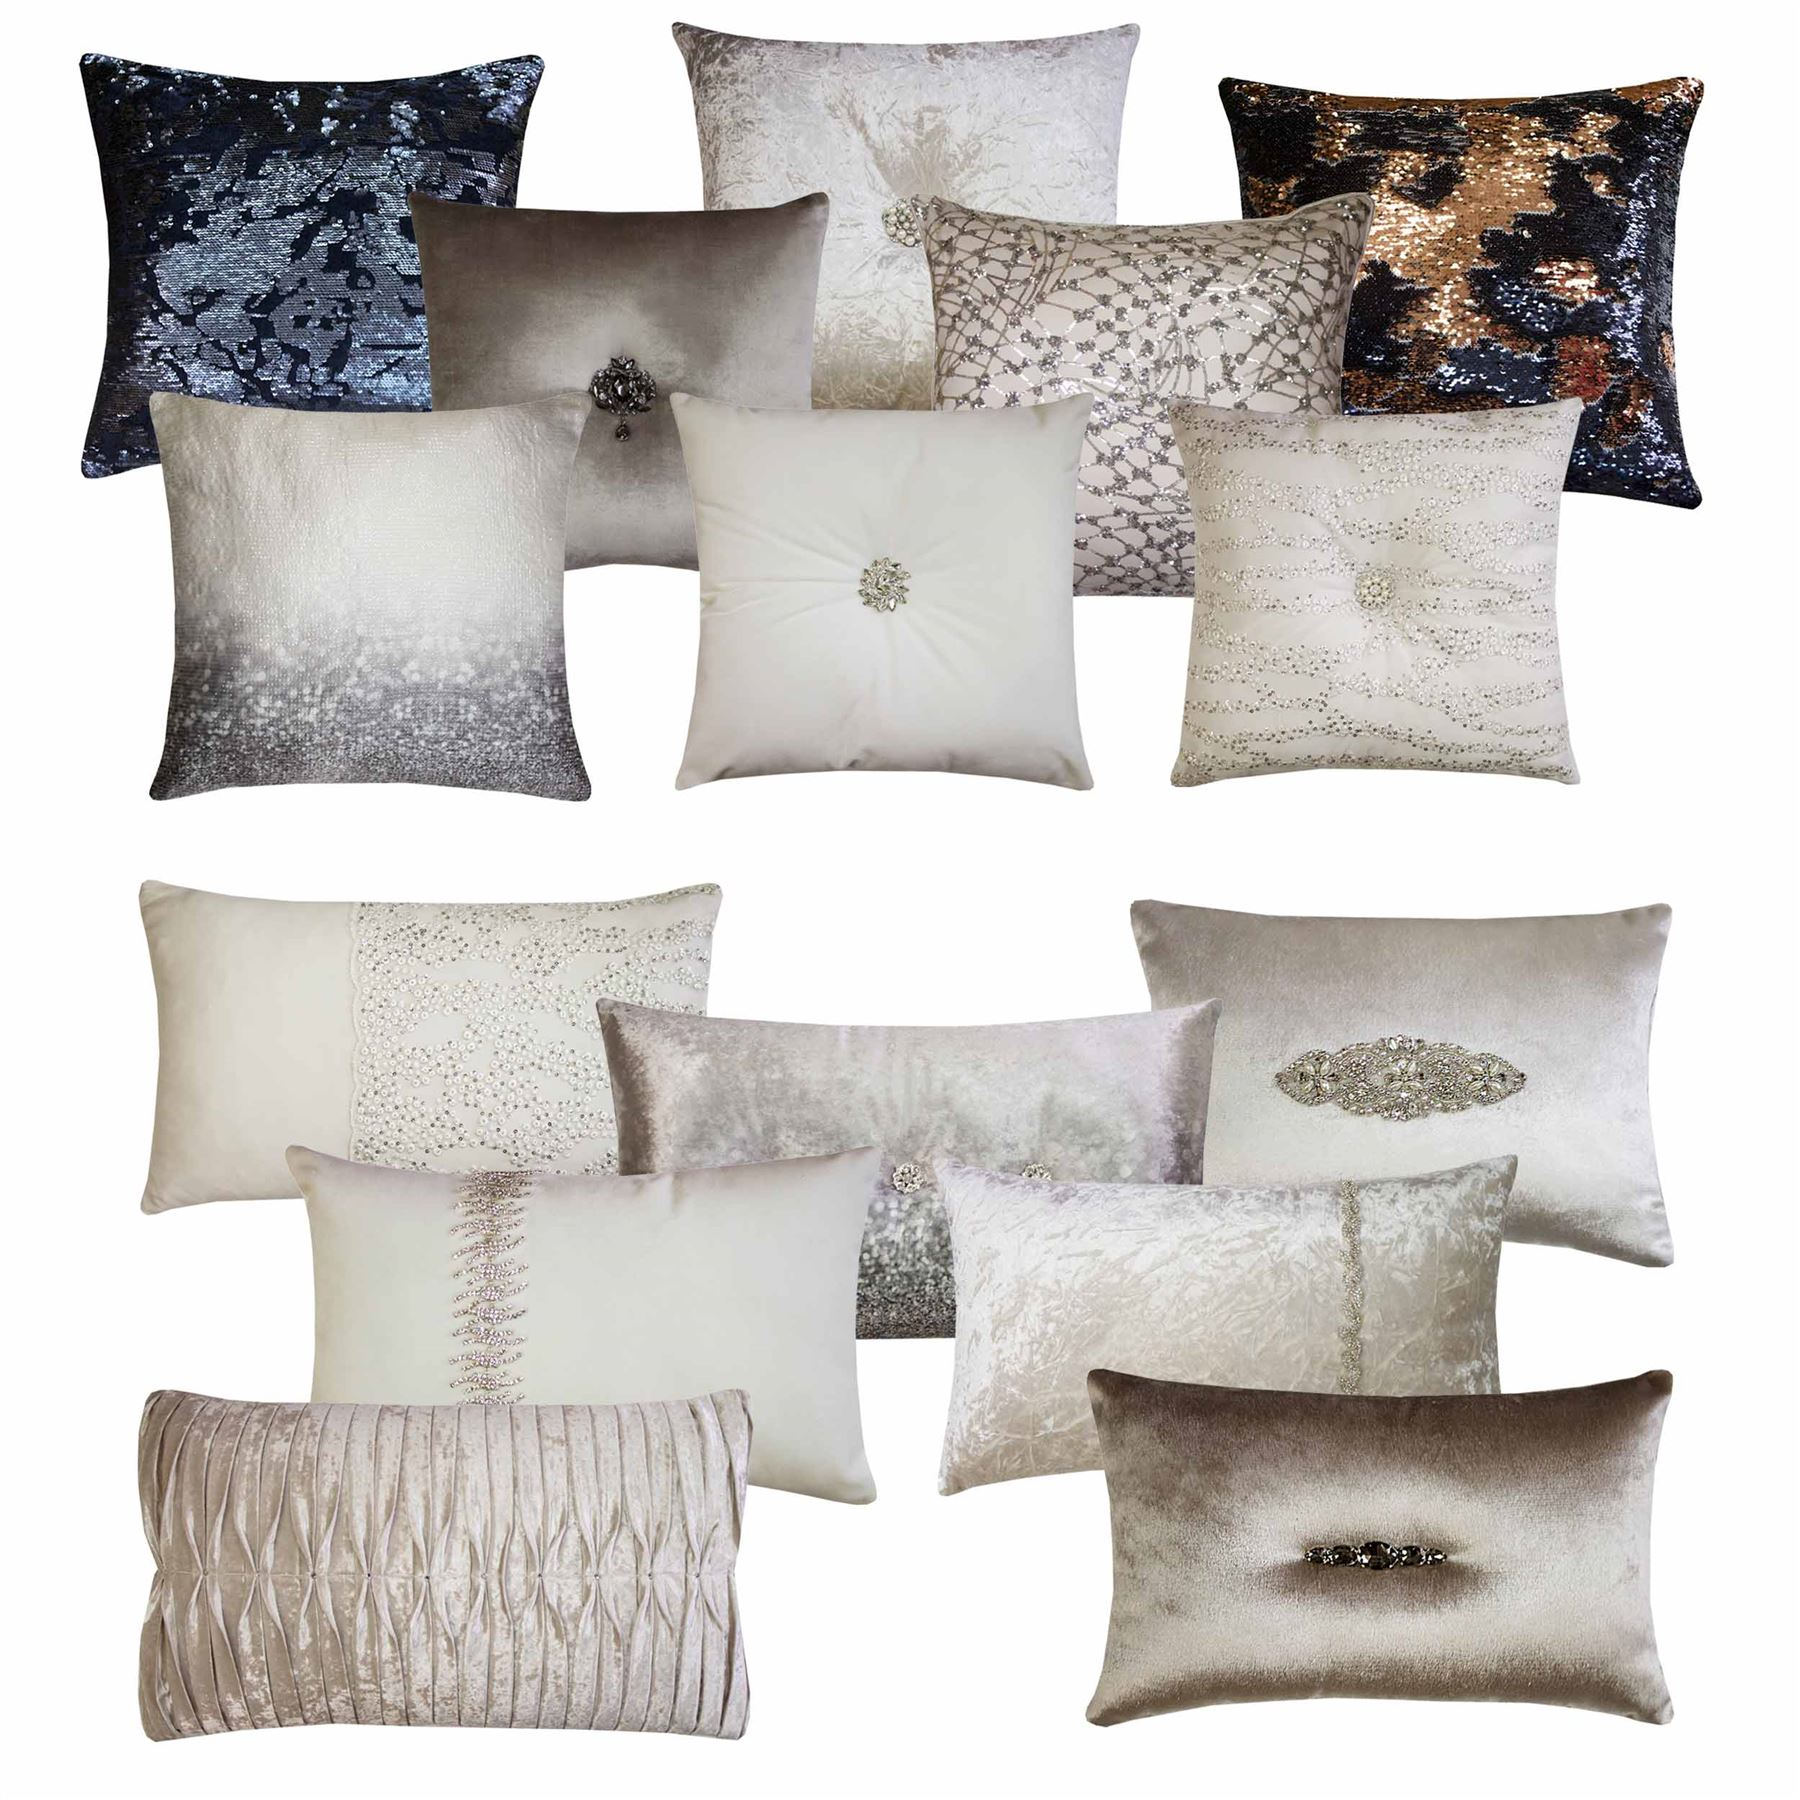 Kylie Minogue Cushion Oyester Sequin Embellished Pleated